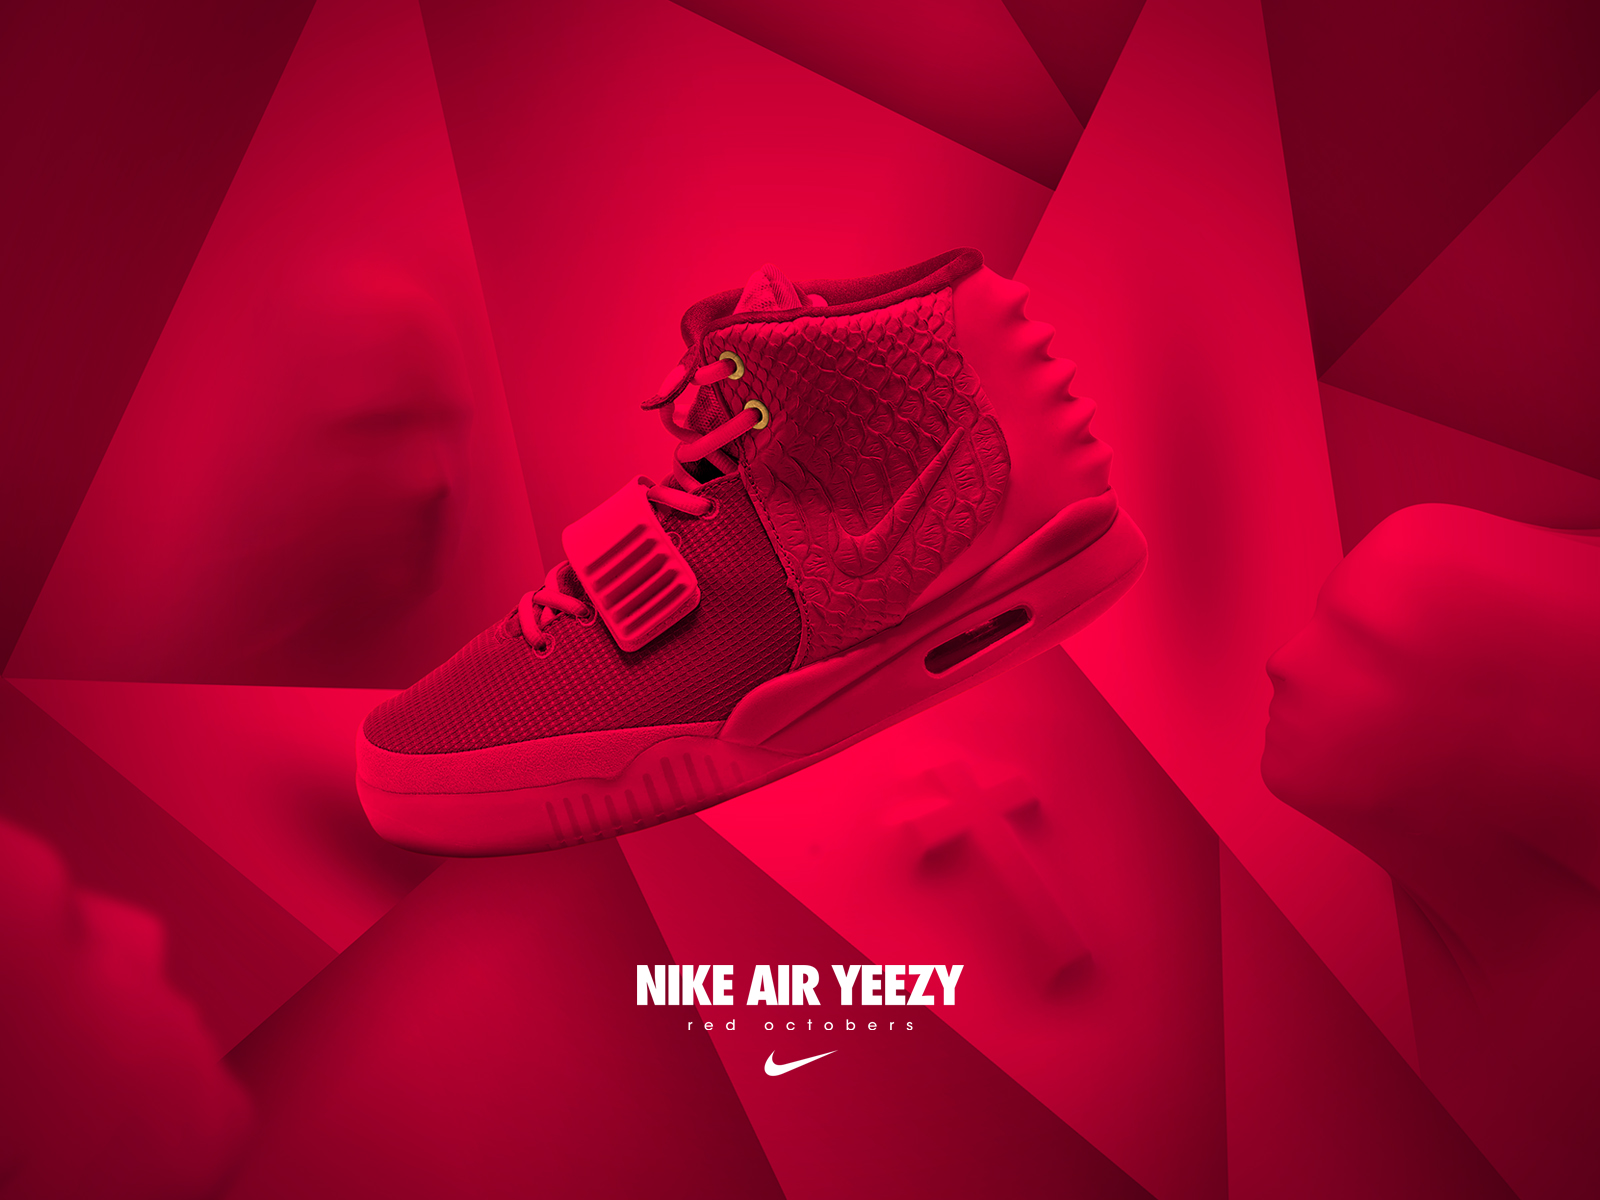 ae74c46d56201 TODAYSHYPE  NIKE AIR YEEZY II X RED OCTOBERS Illustration by Leroy ...